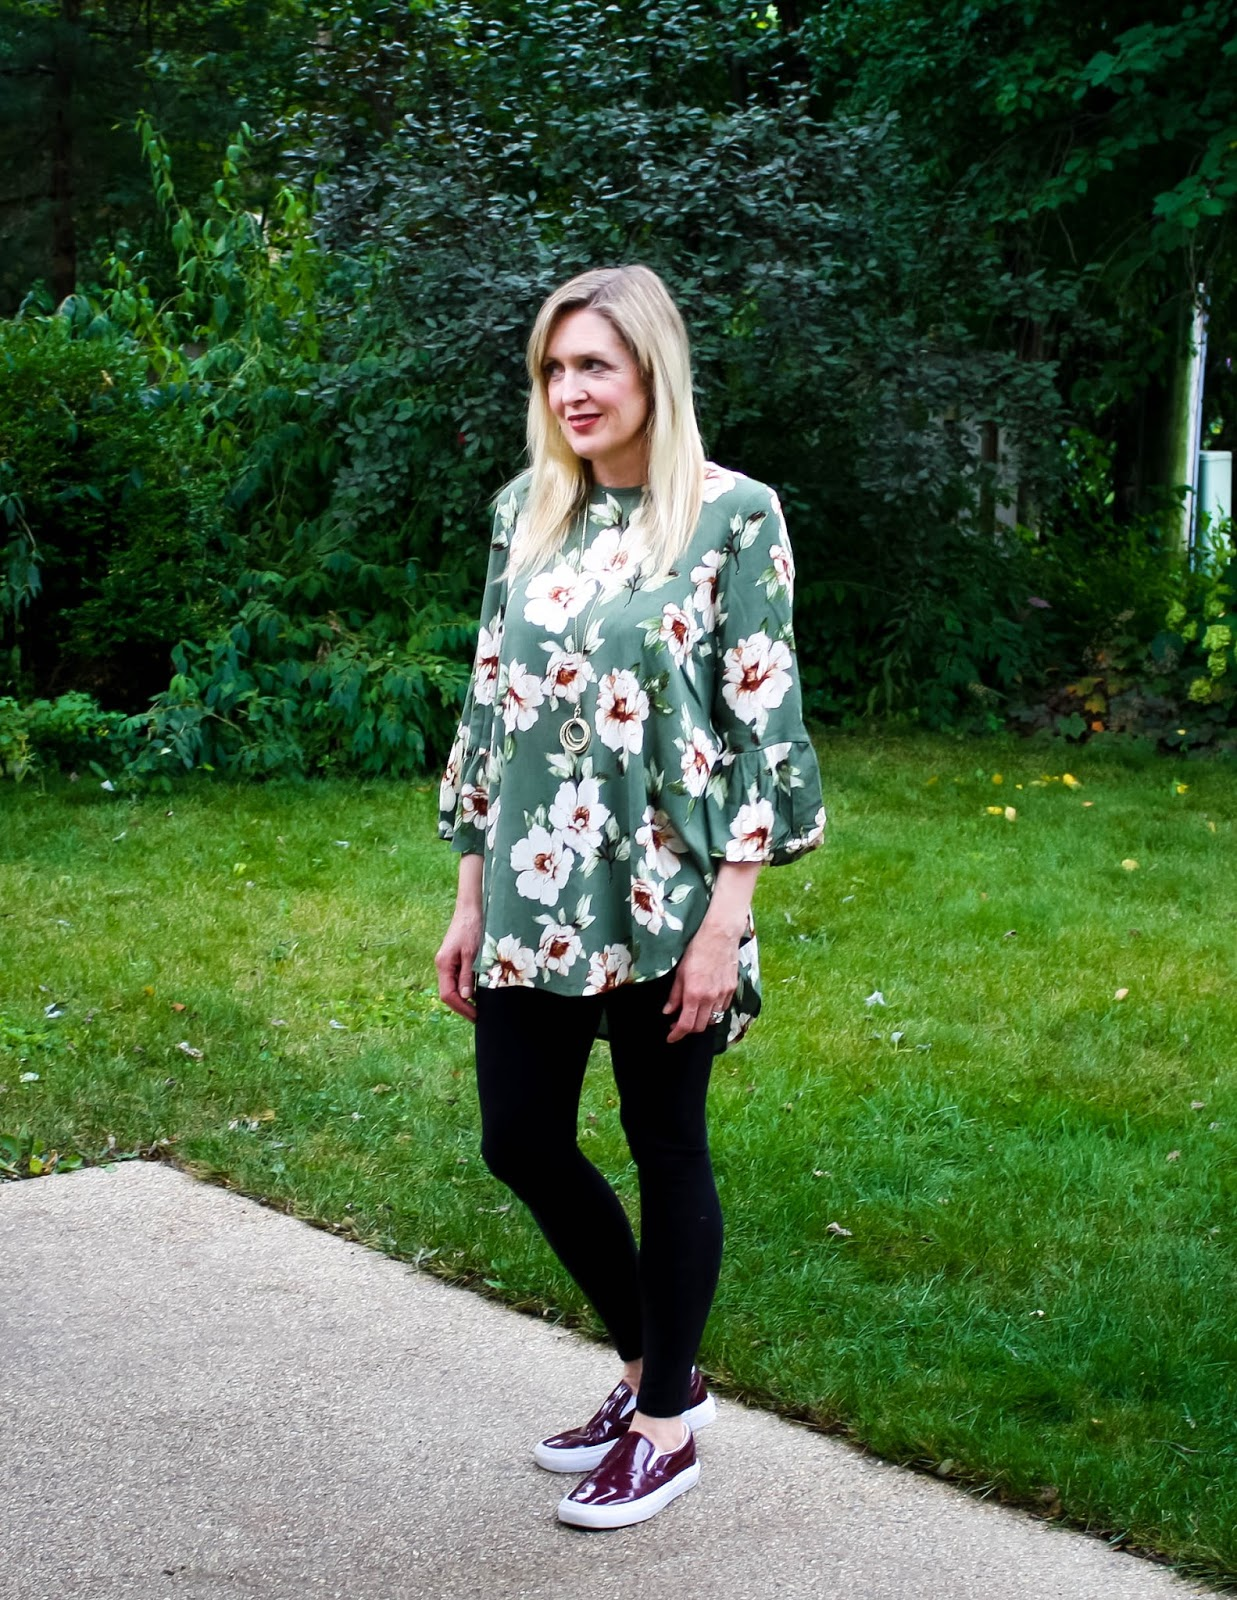 Travel Style: Olive Floral Tunic with Leggings and Sneakers